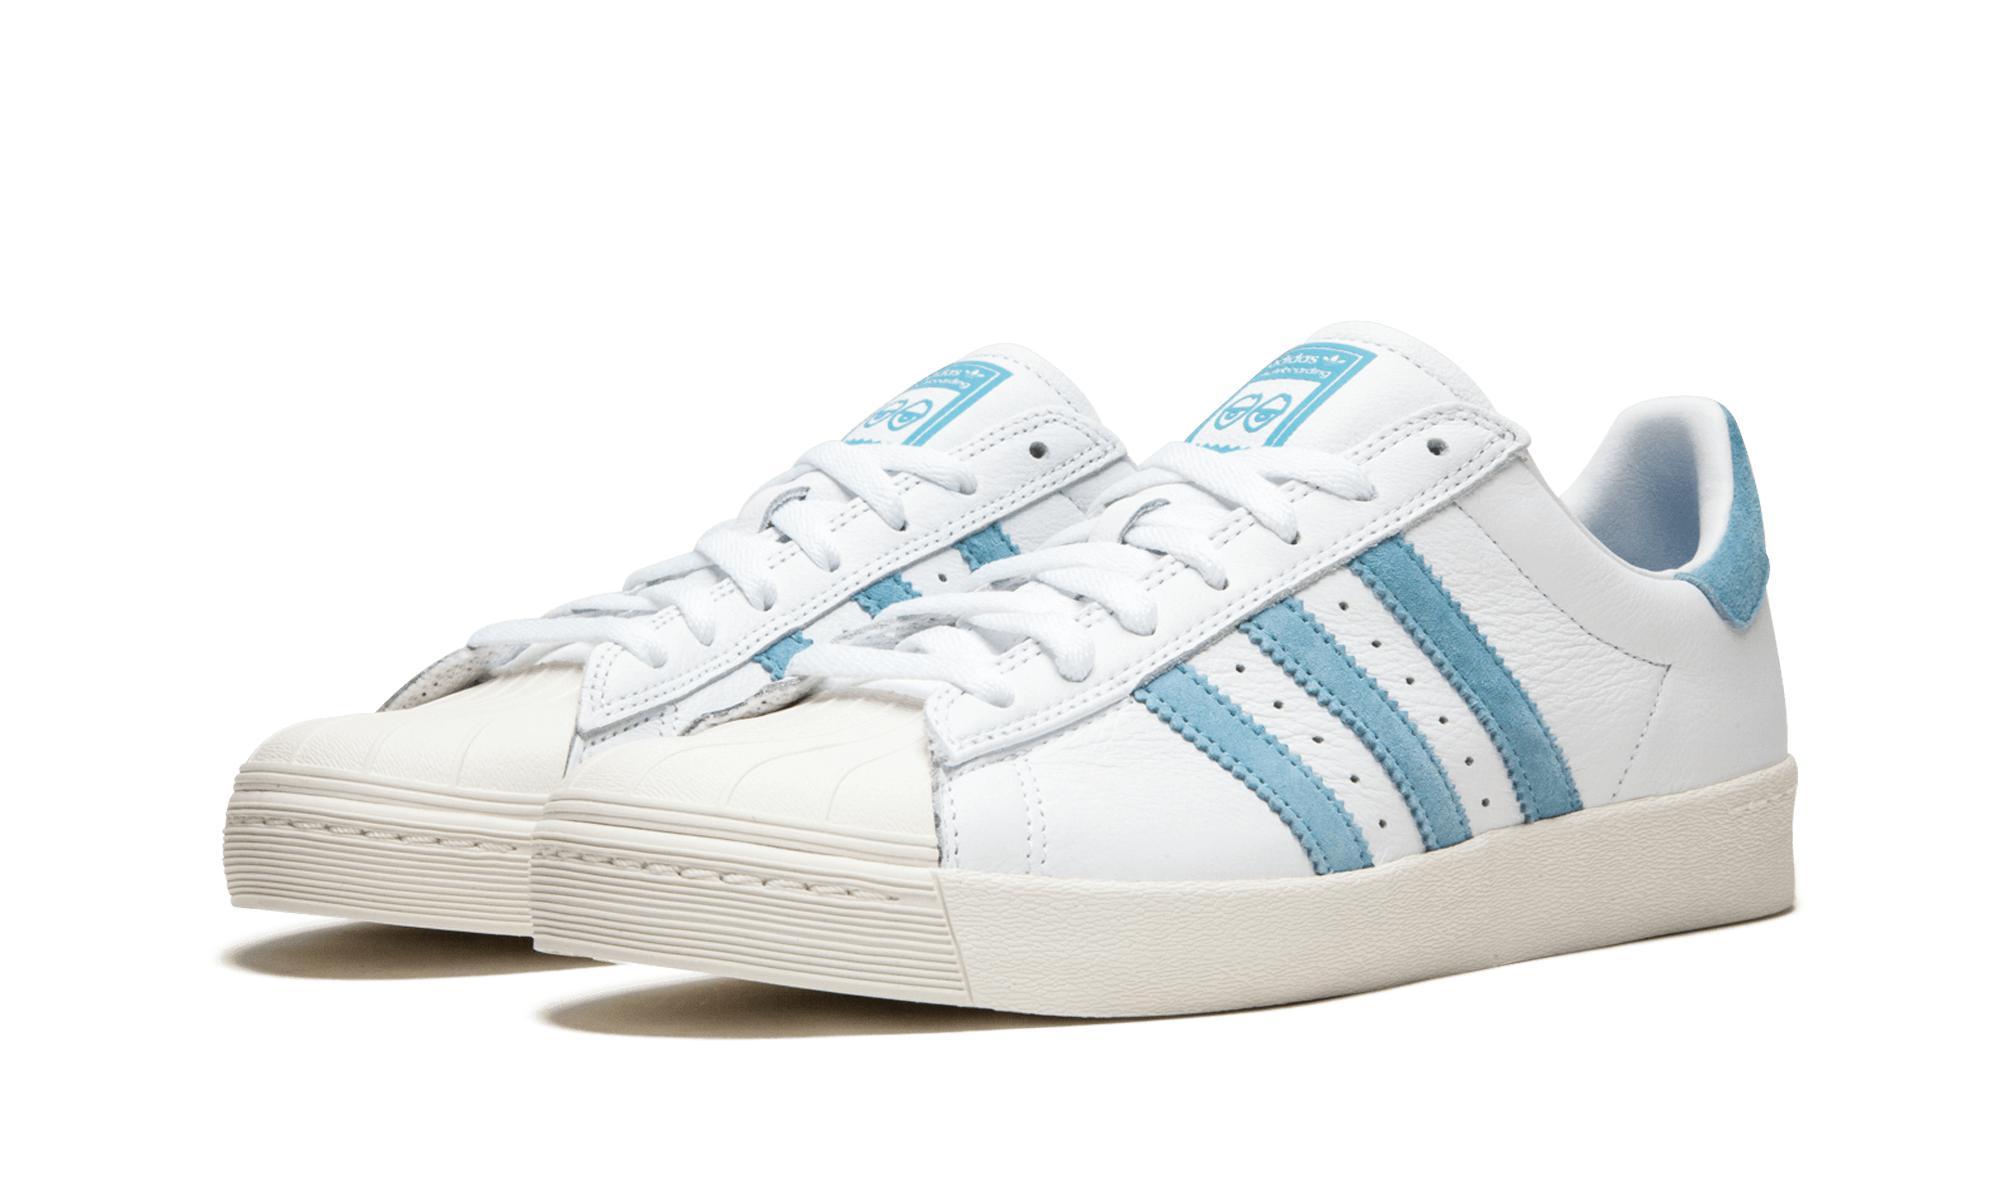 52988510a Adidas - Blue Superstar Vulc X Krooked for Men - Lyst. View fullscreen